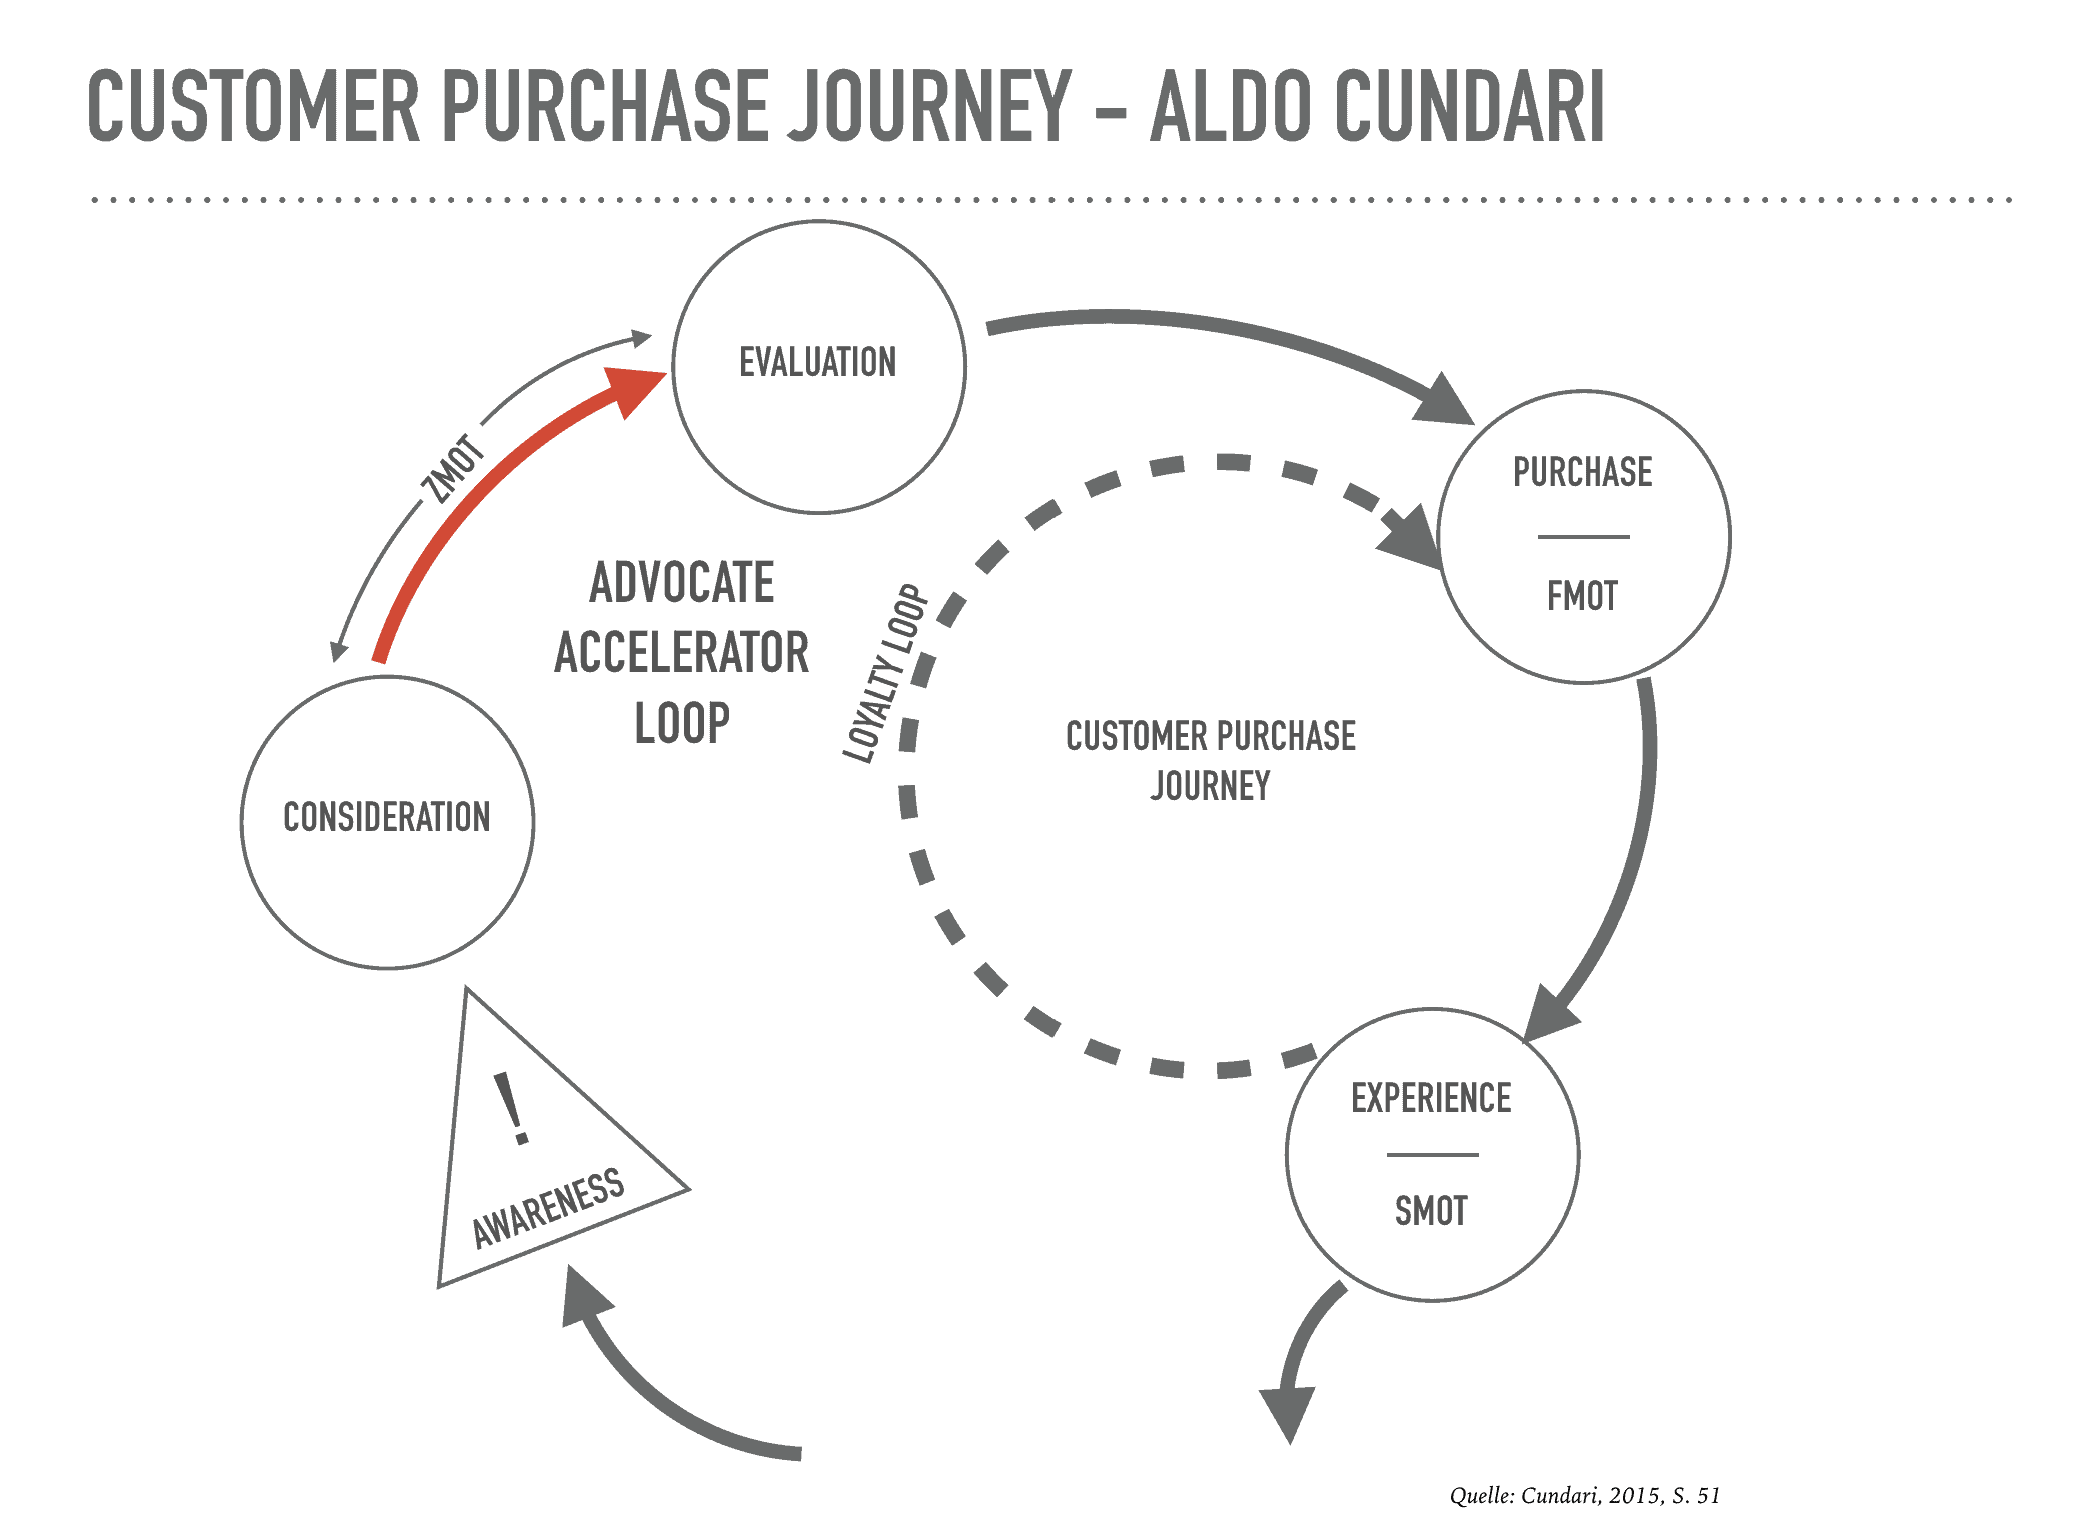 Customer Purchase Journey - Aldo Cundari